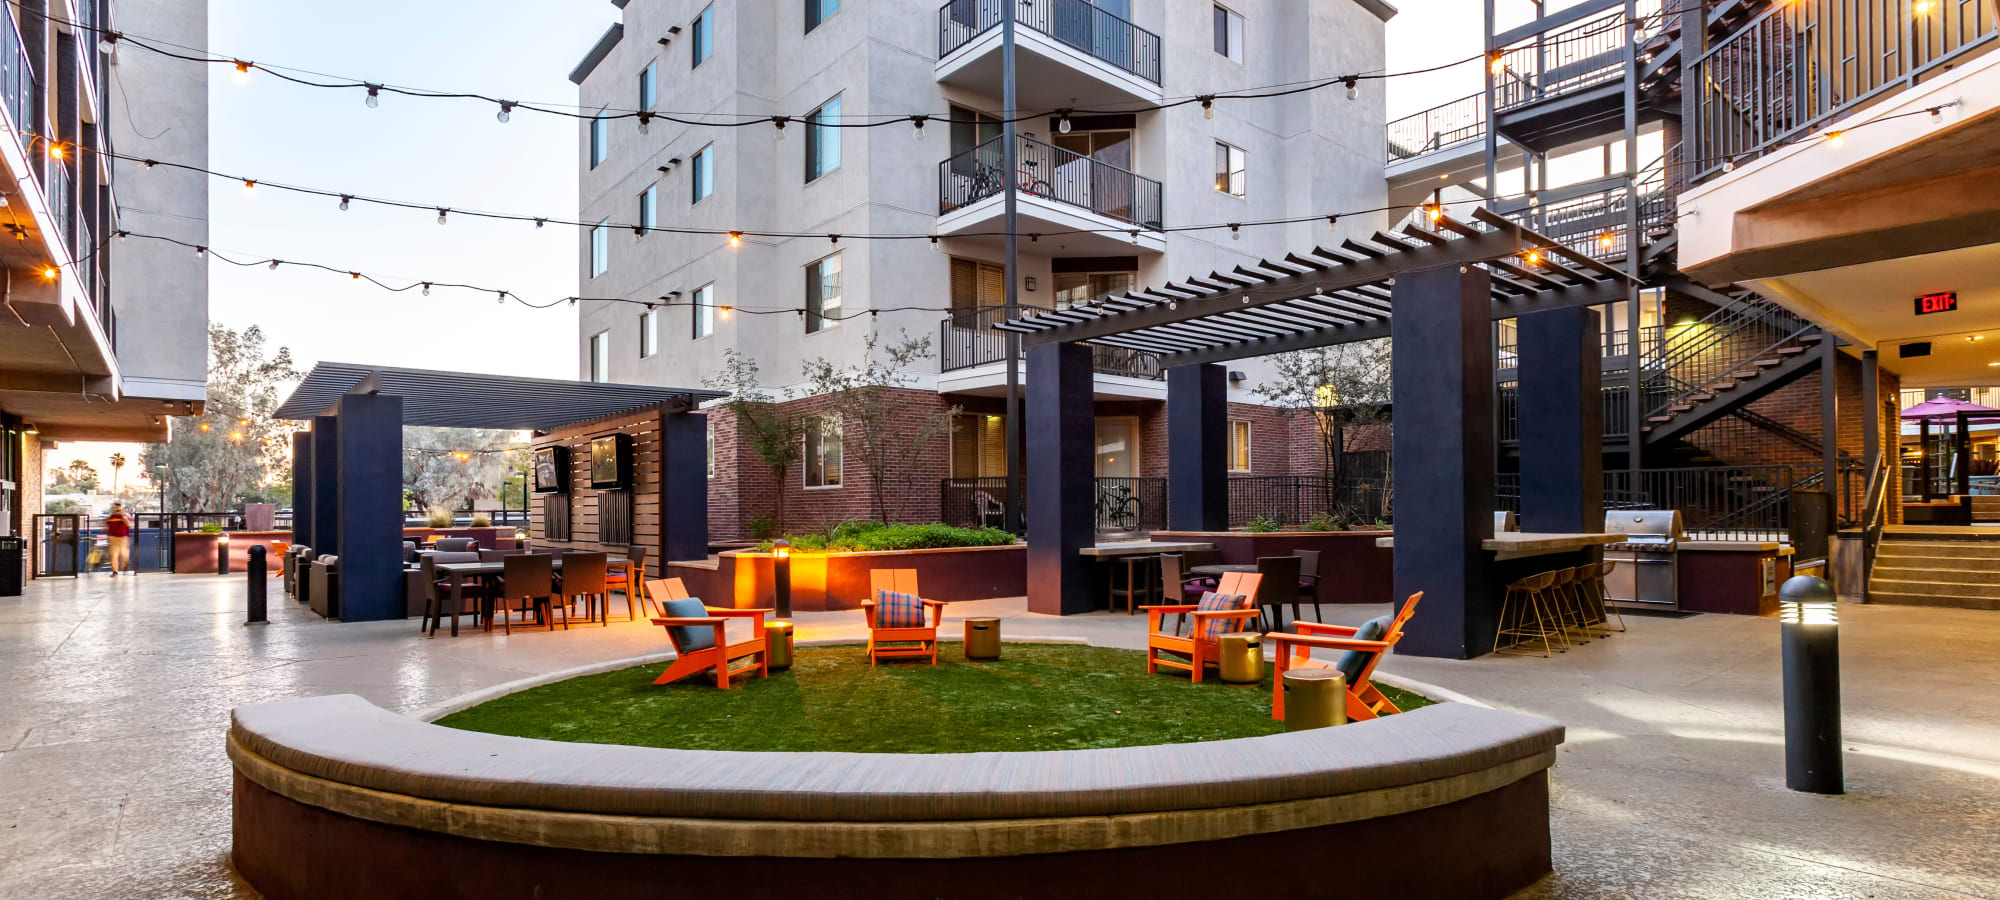 Outdoor firepit at The Fleetwood in Tempe, Arizona